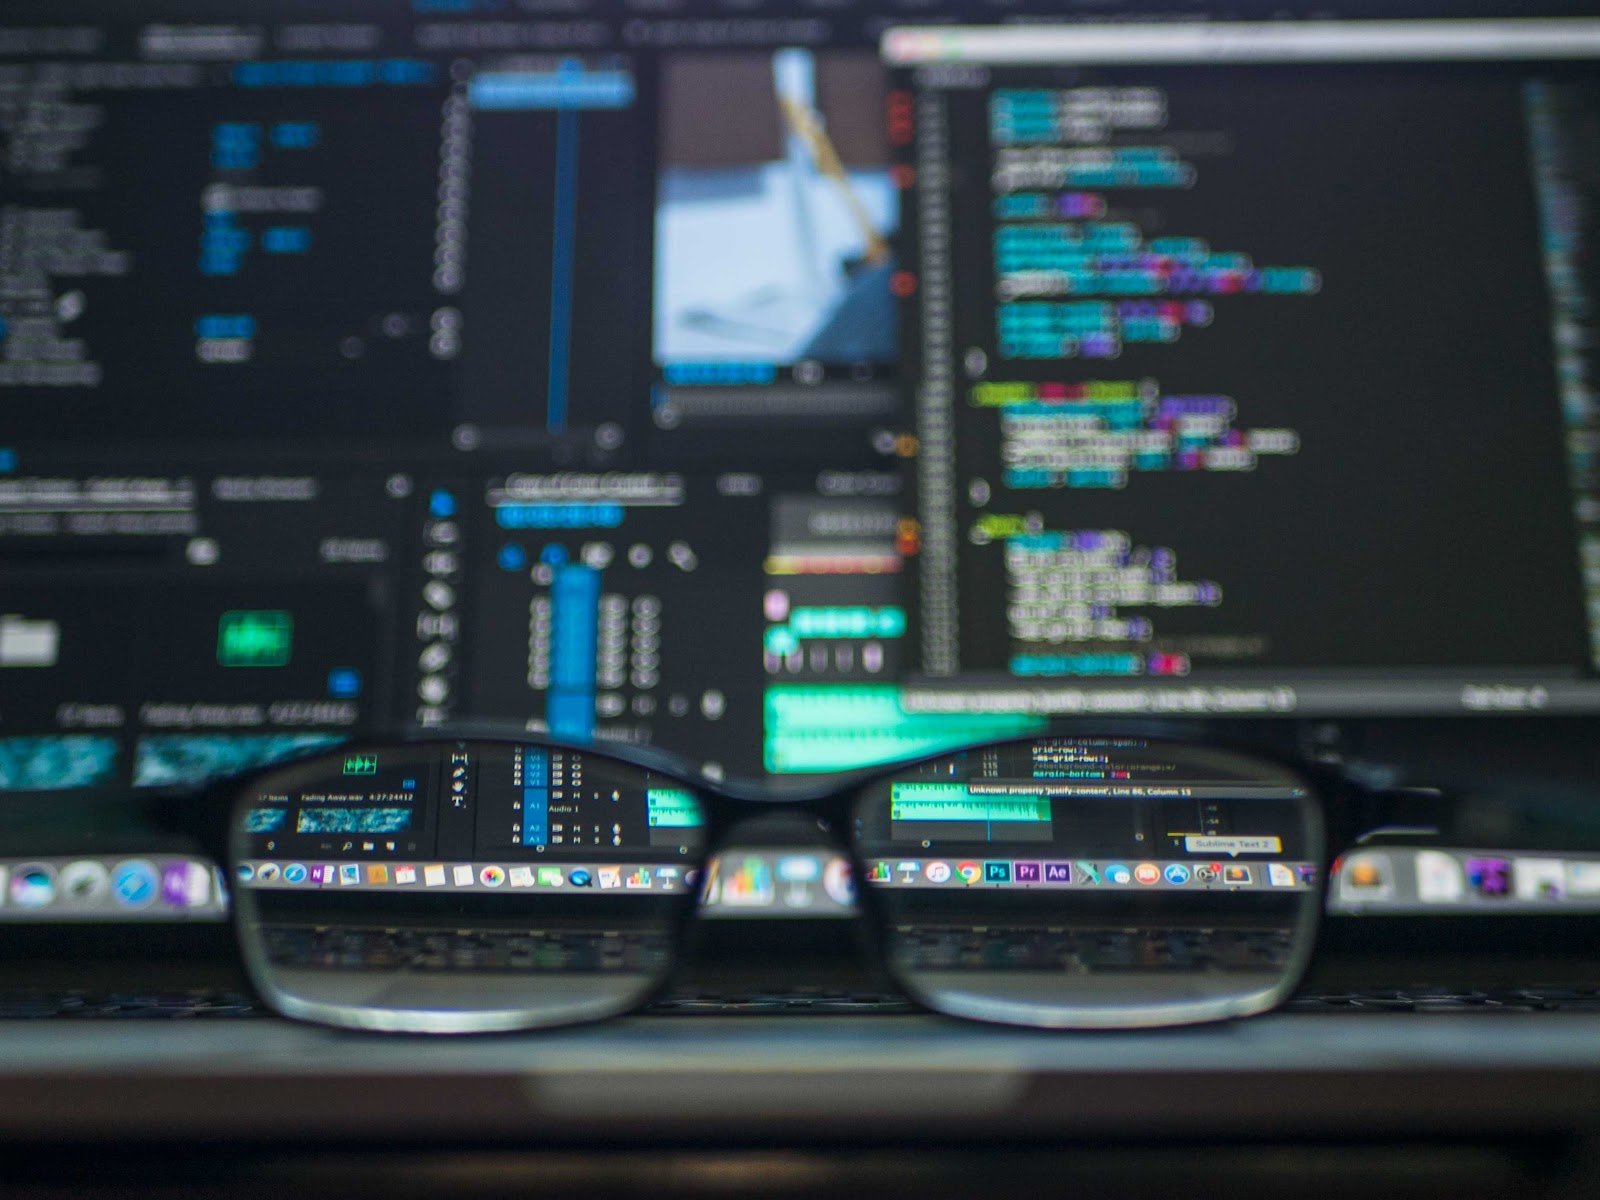 A pair of glasses placed in front of a computer screen